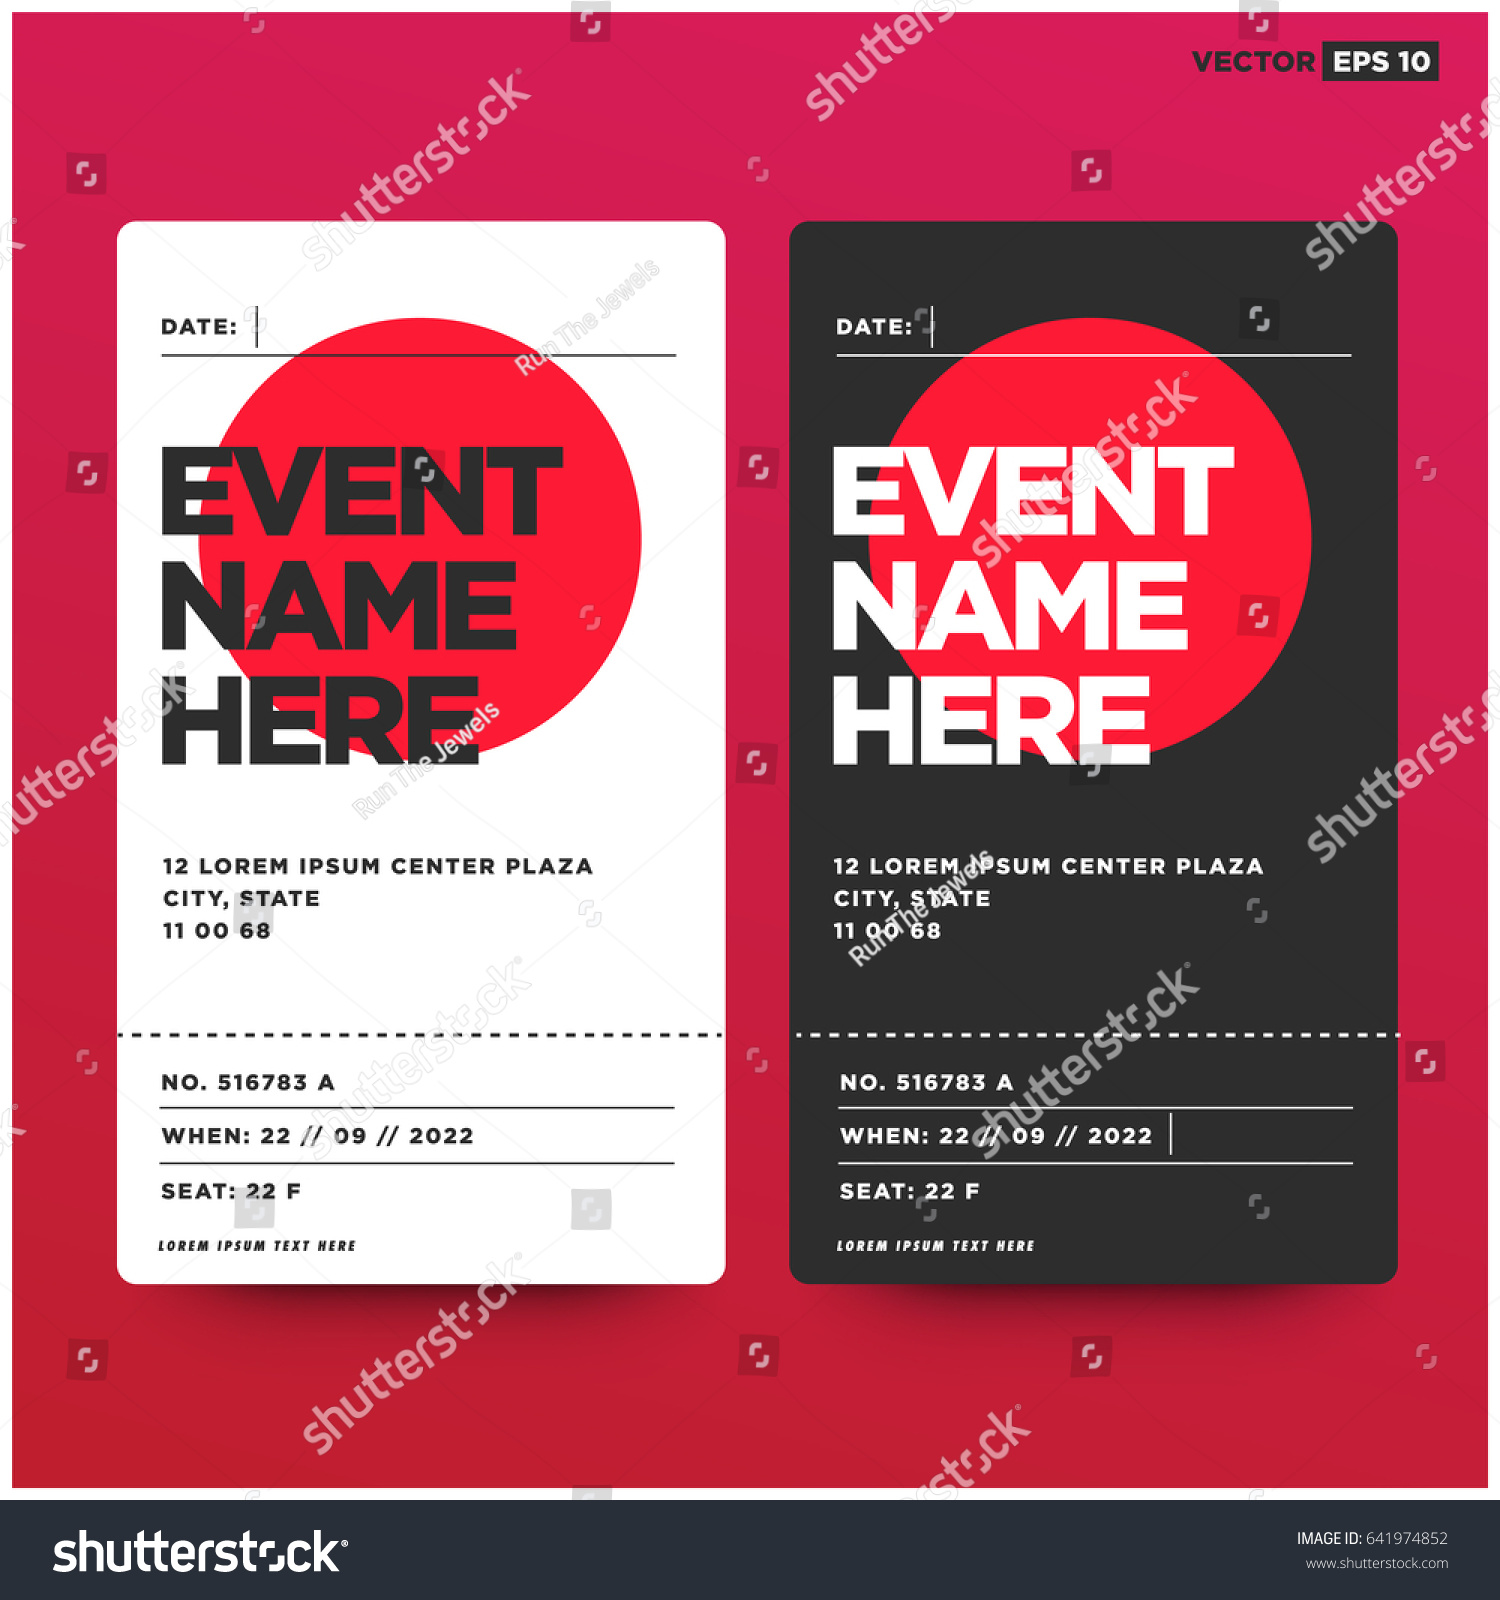 Sporting Event Ticket Template. best 25 sporting event tickets ideas ...